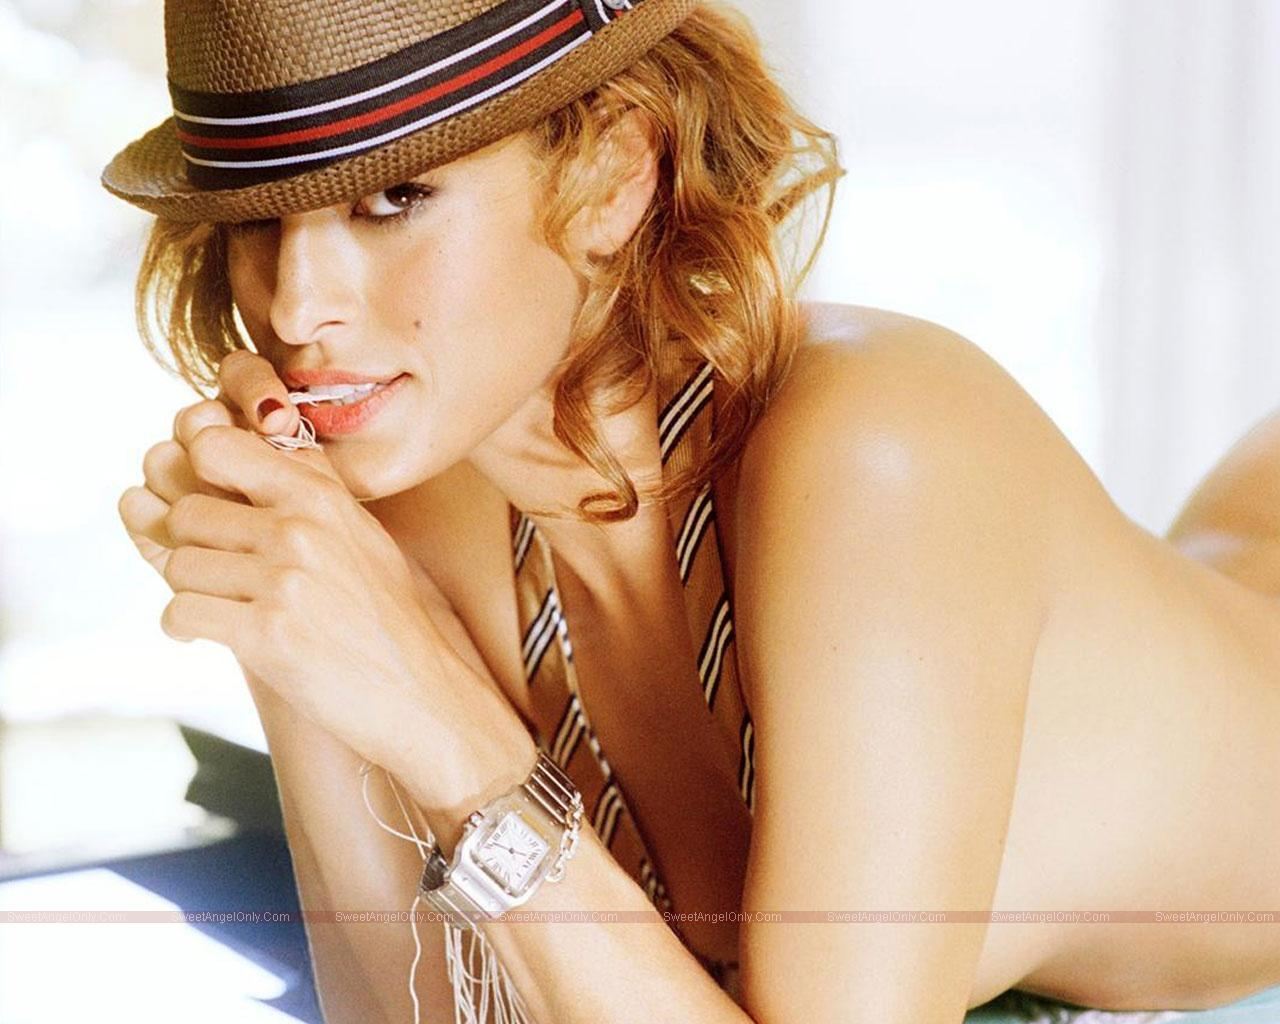 http://3.bp.blogspot.com/_jJPqWg6V3Y8/TUbBbE3CPBI/AAAAAAAAEF0/UK77pYXhc4A/s1600/Eva_Mendes_Hot_Wallpapers__SweetAngelOnly_17.jpg